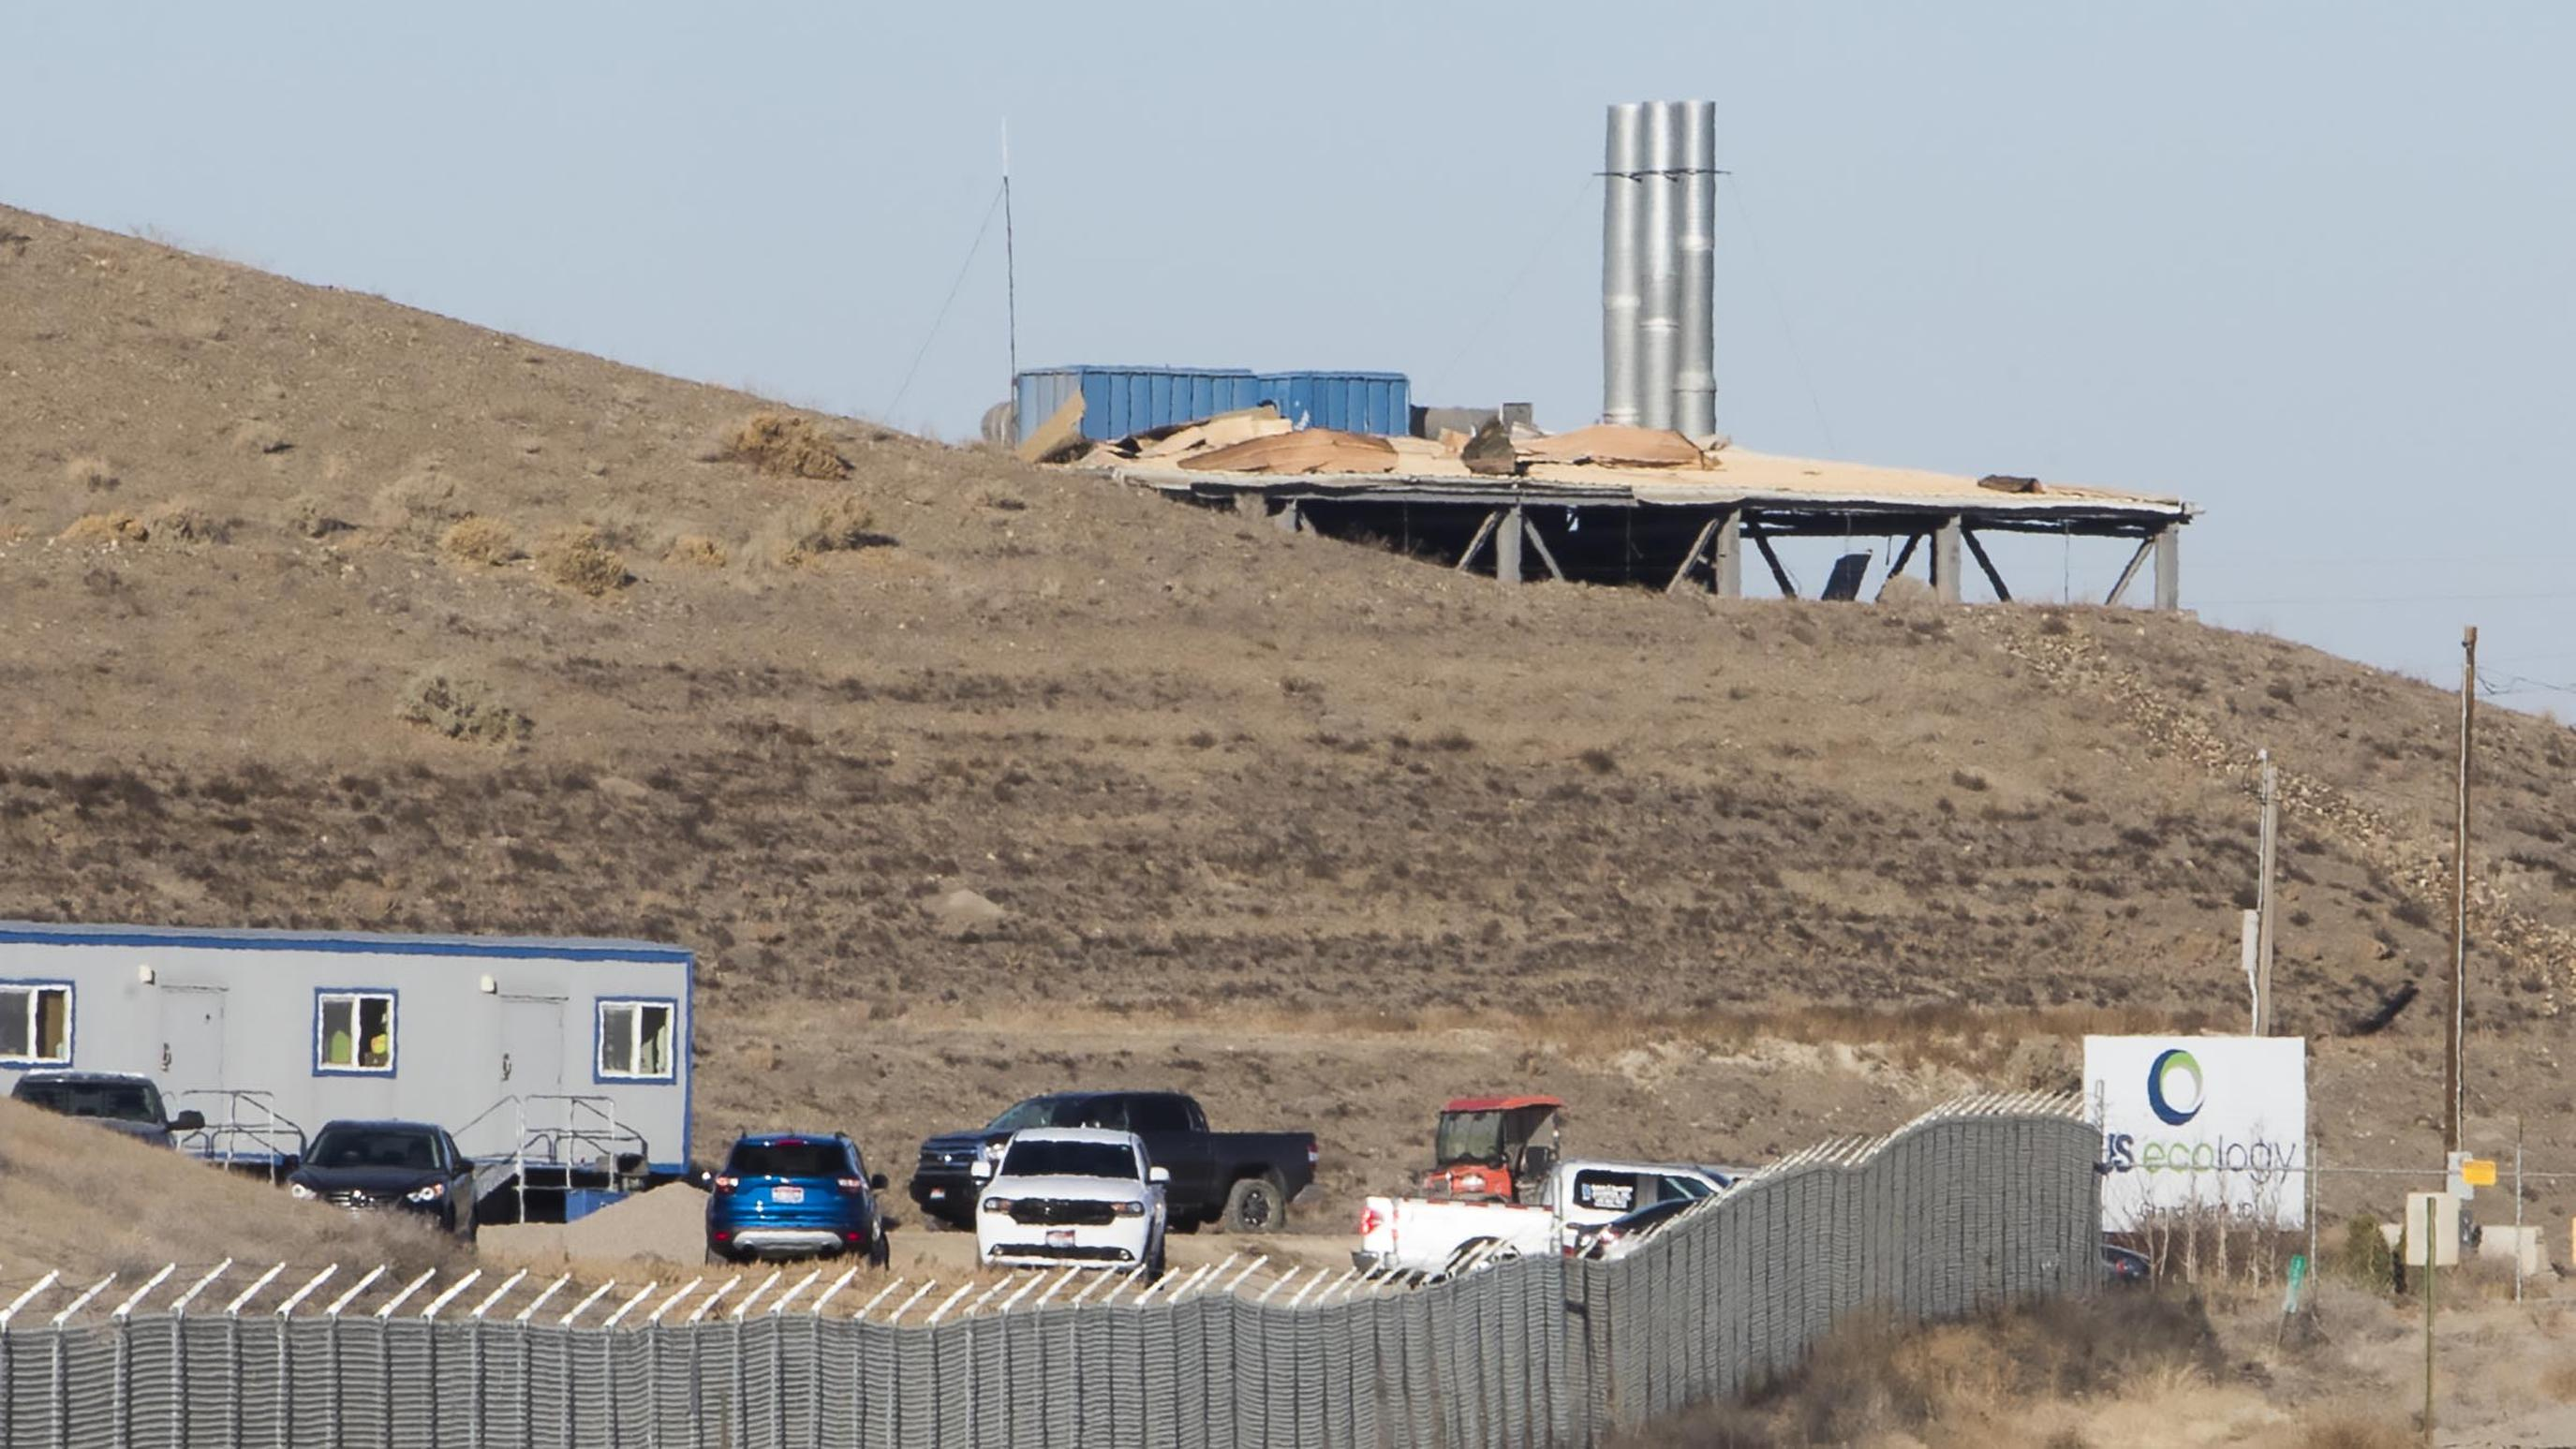 Monitors check for radiation release after waste site blast